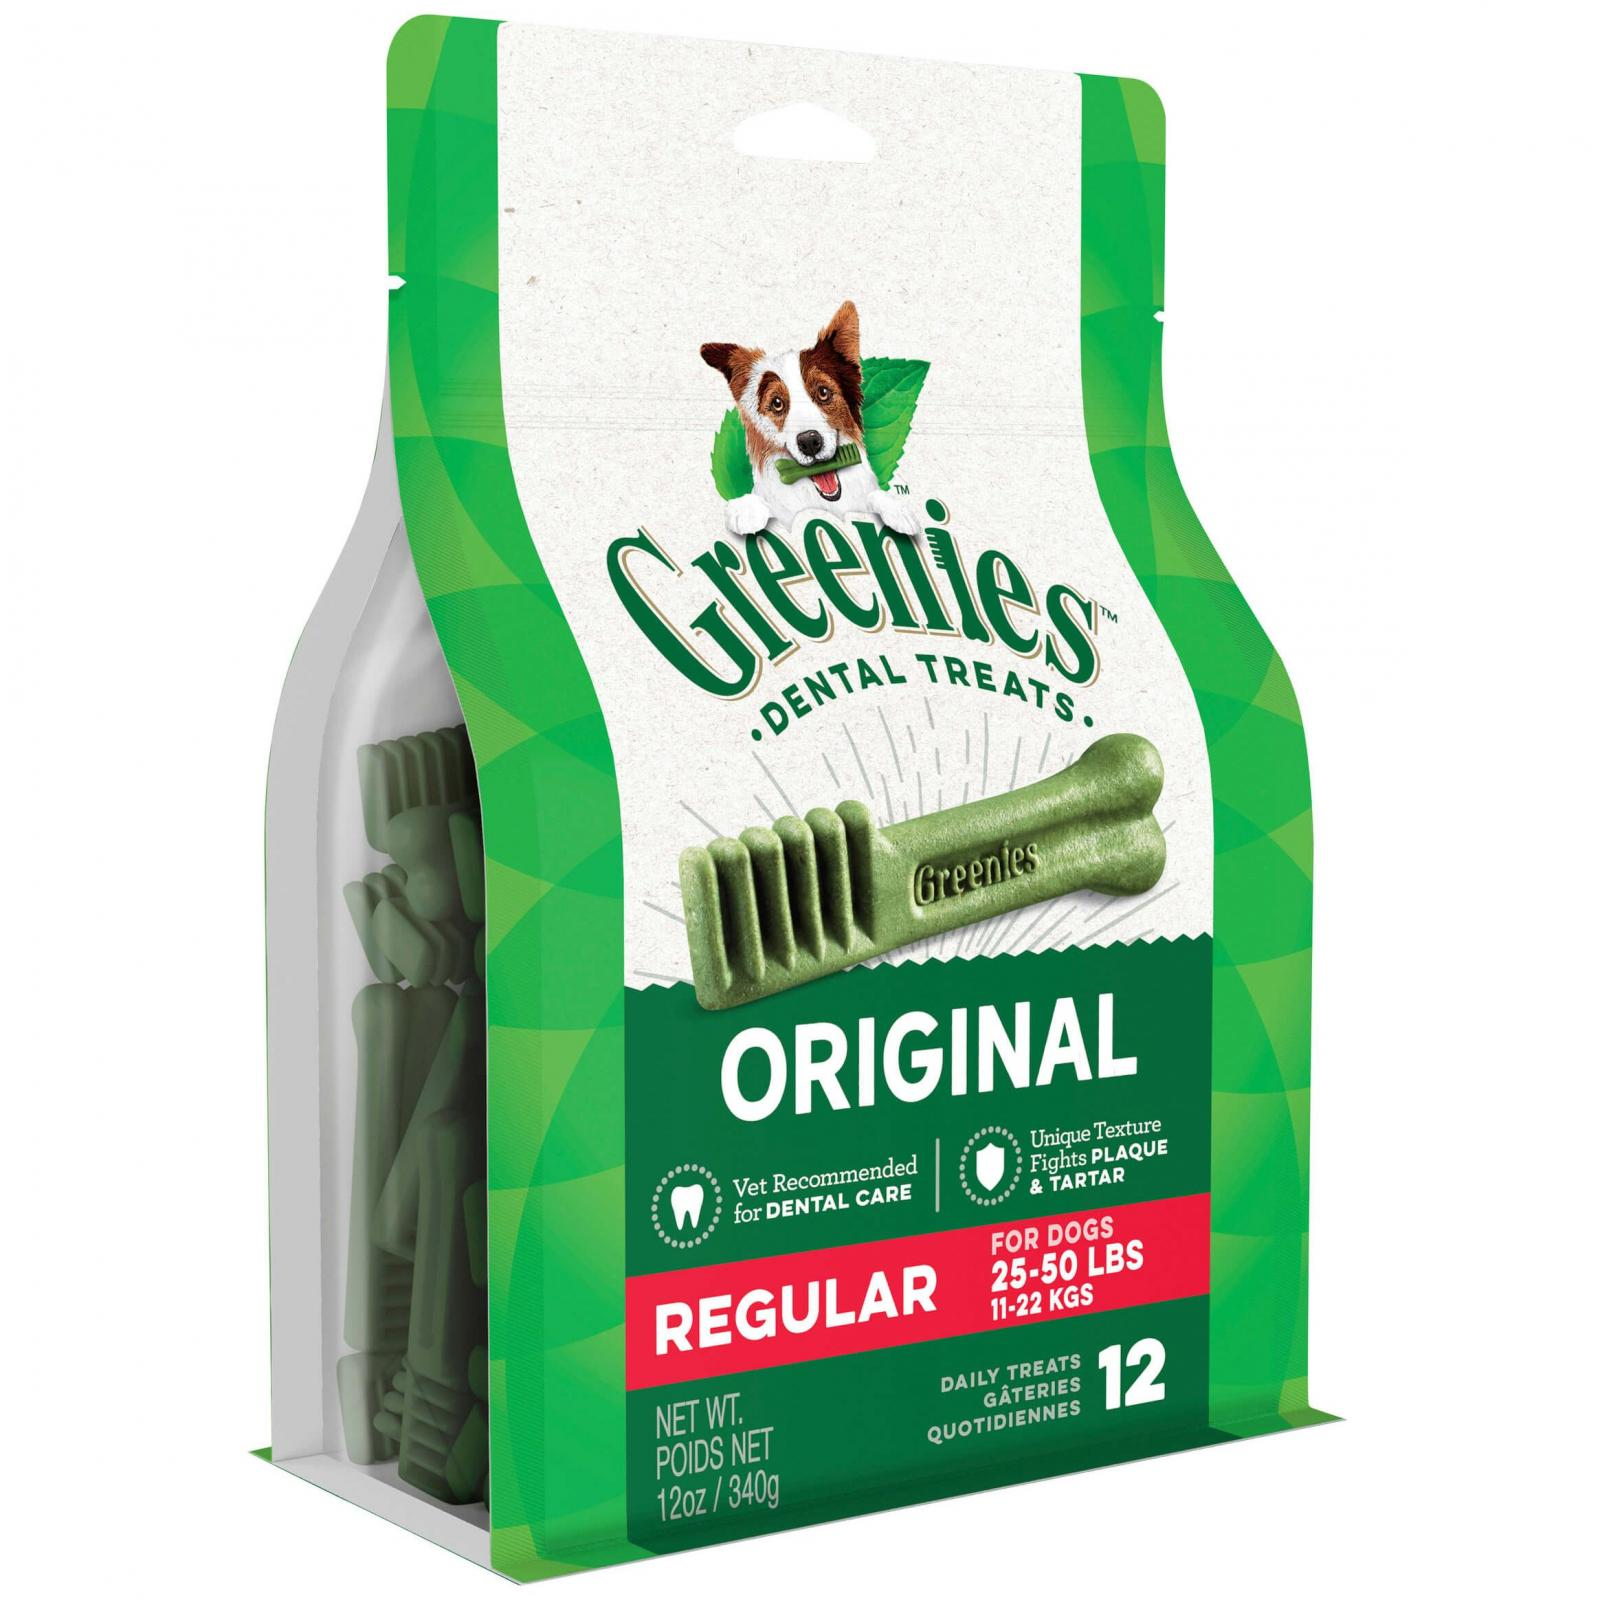 Greenies Greenies - Regular - Dental Chews for Medium Dogs